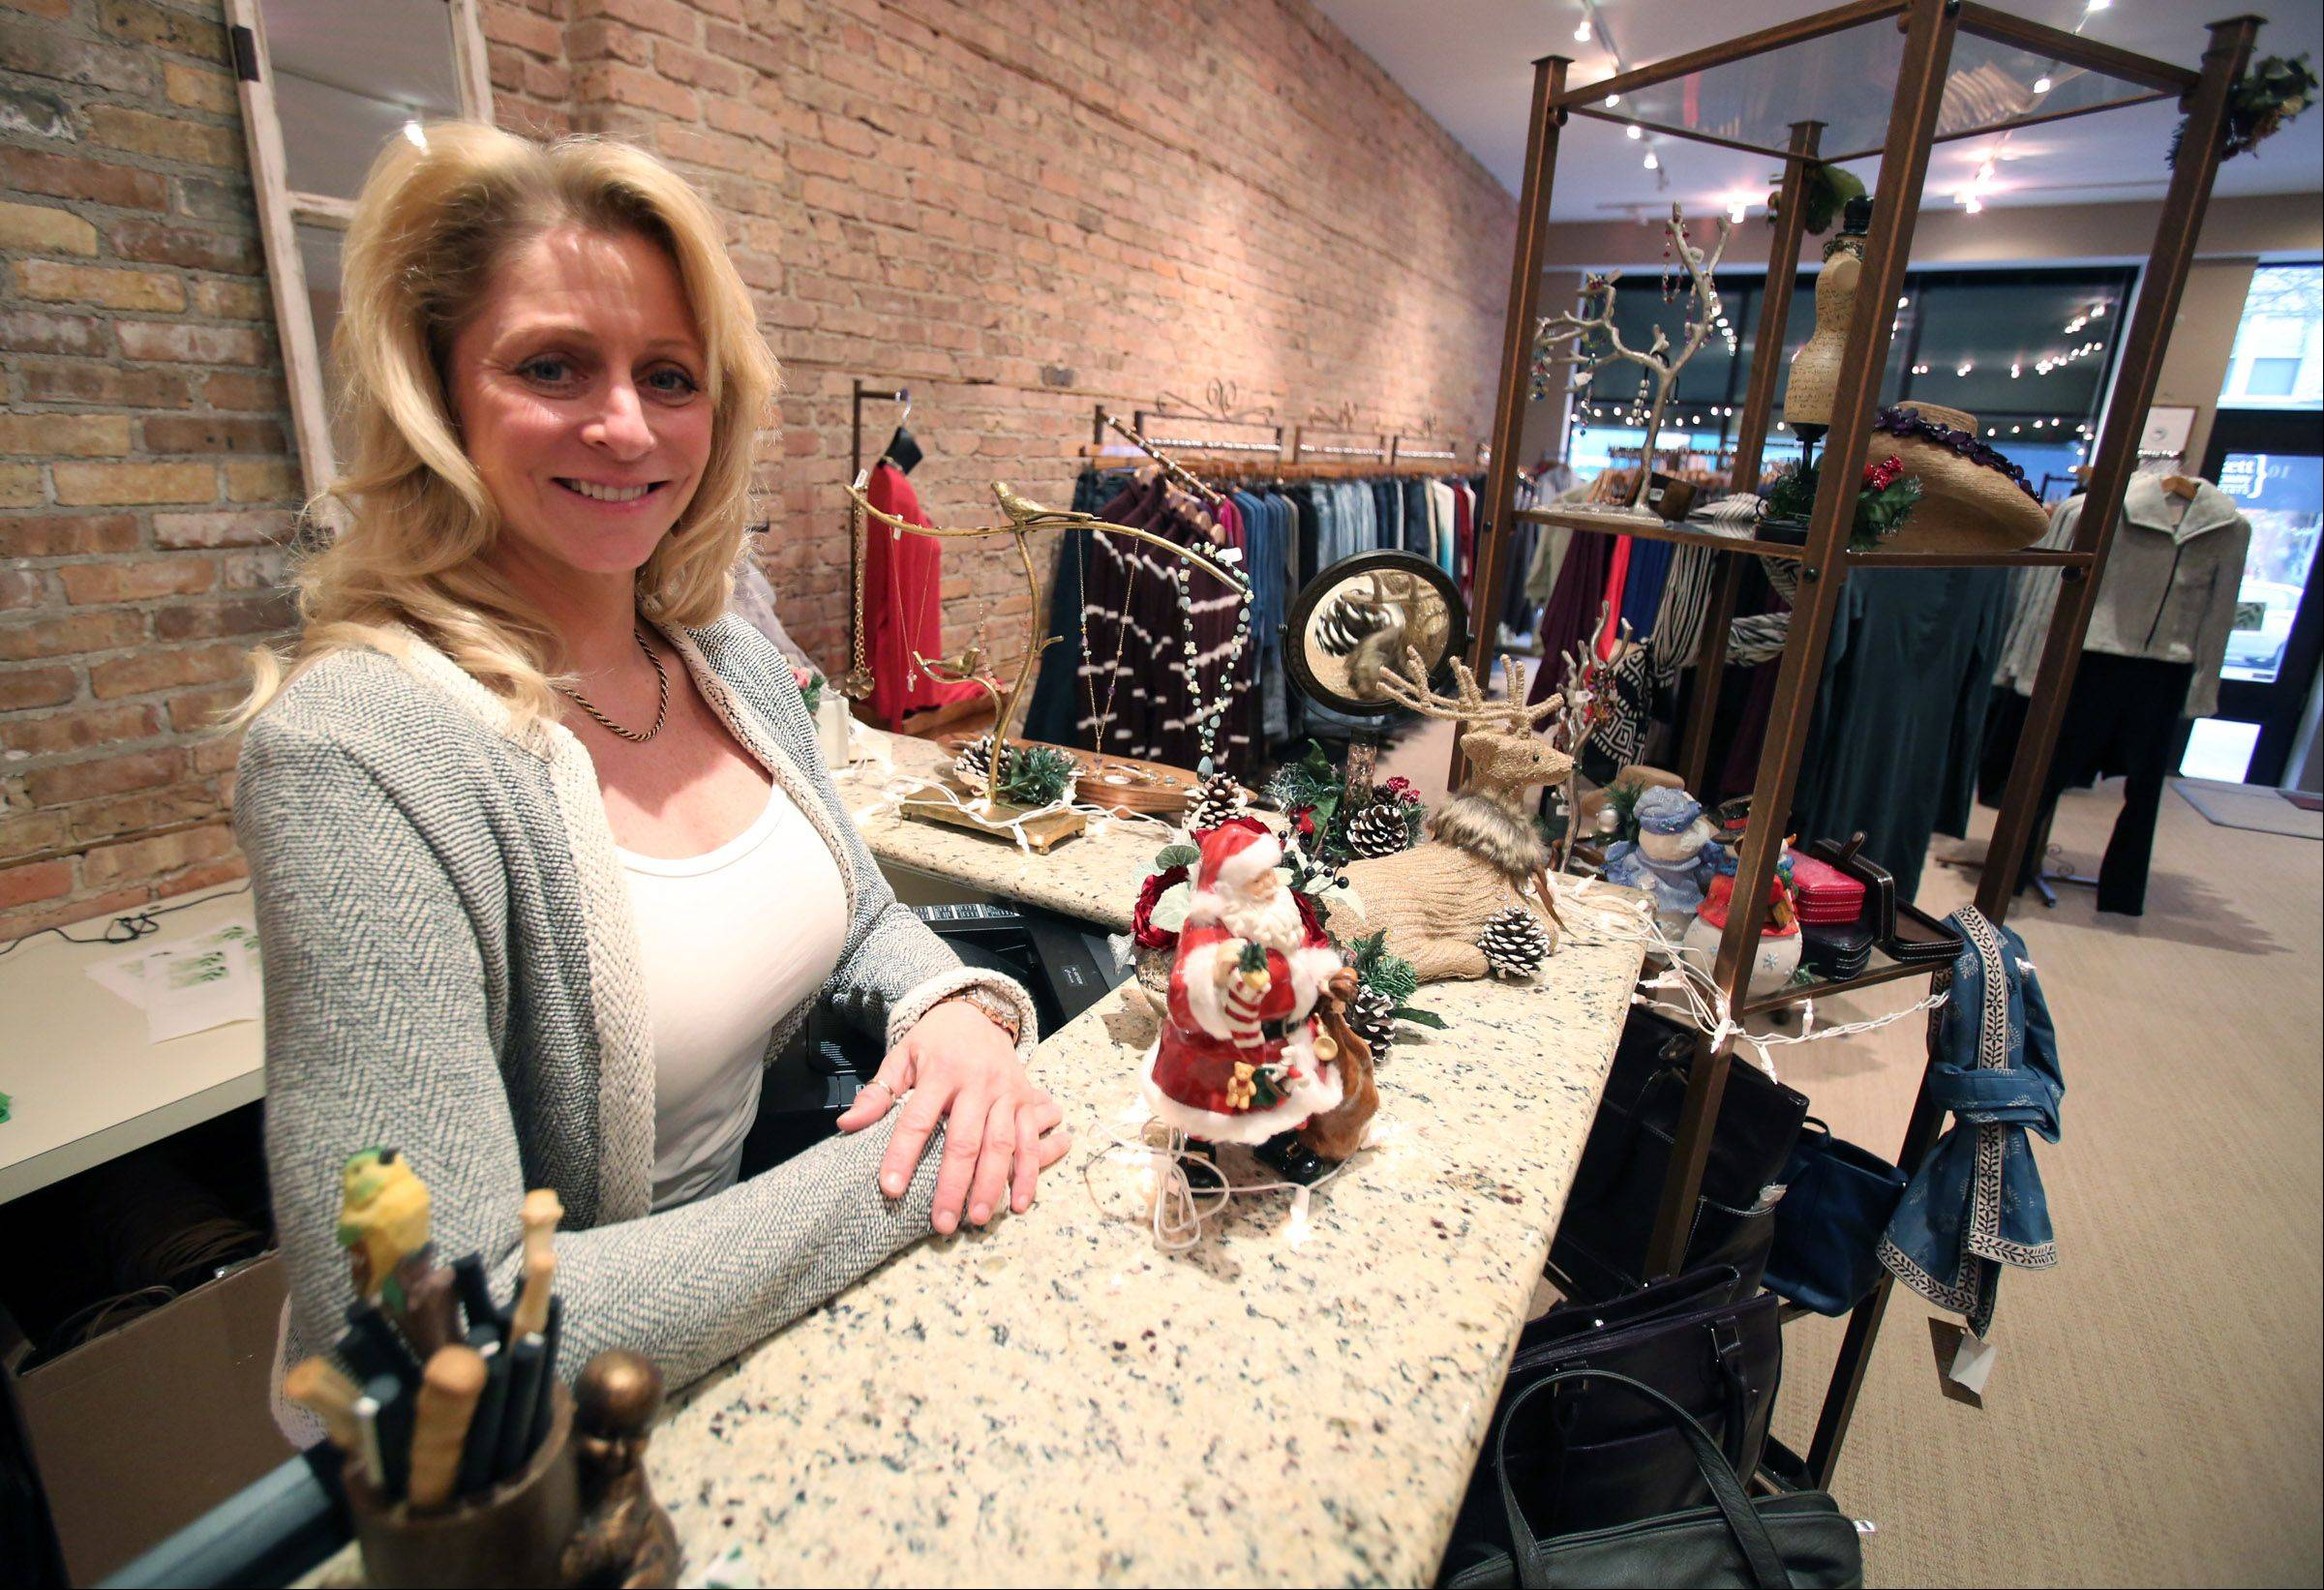 Jennifer Vanacora, owner of Eco Diva Clothing, plans special promotions for Small Business Saturday this weekend.